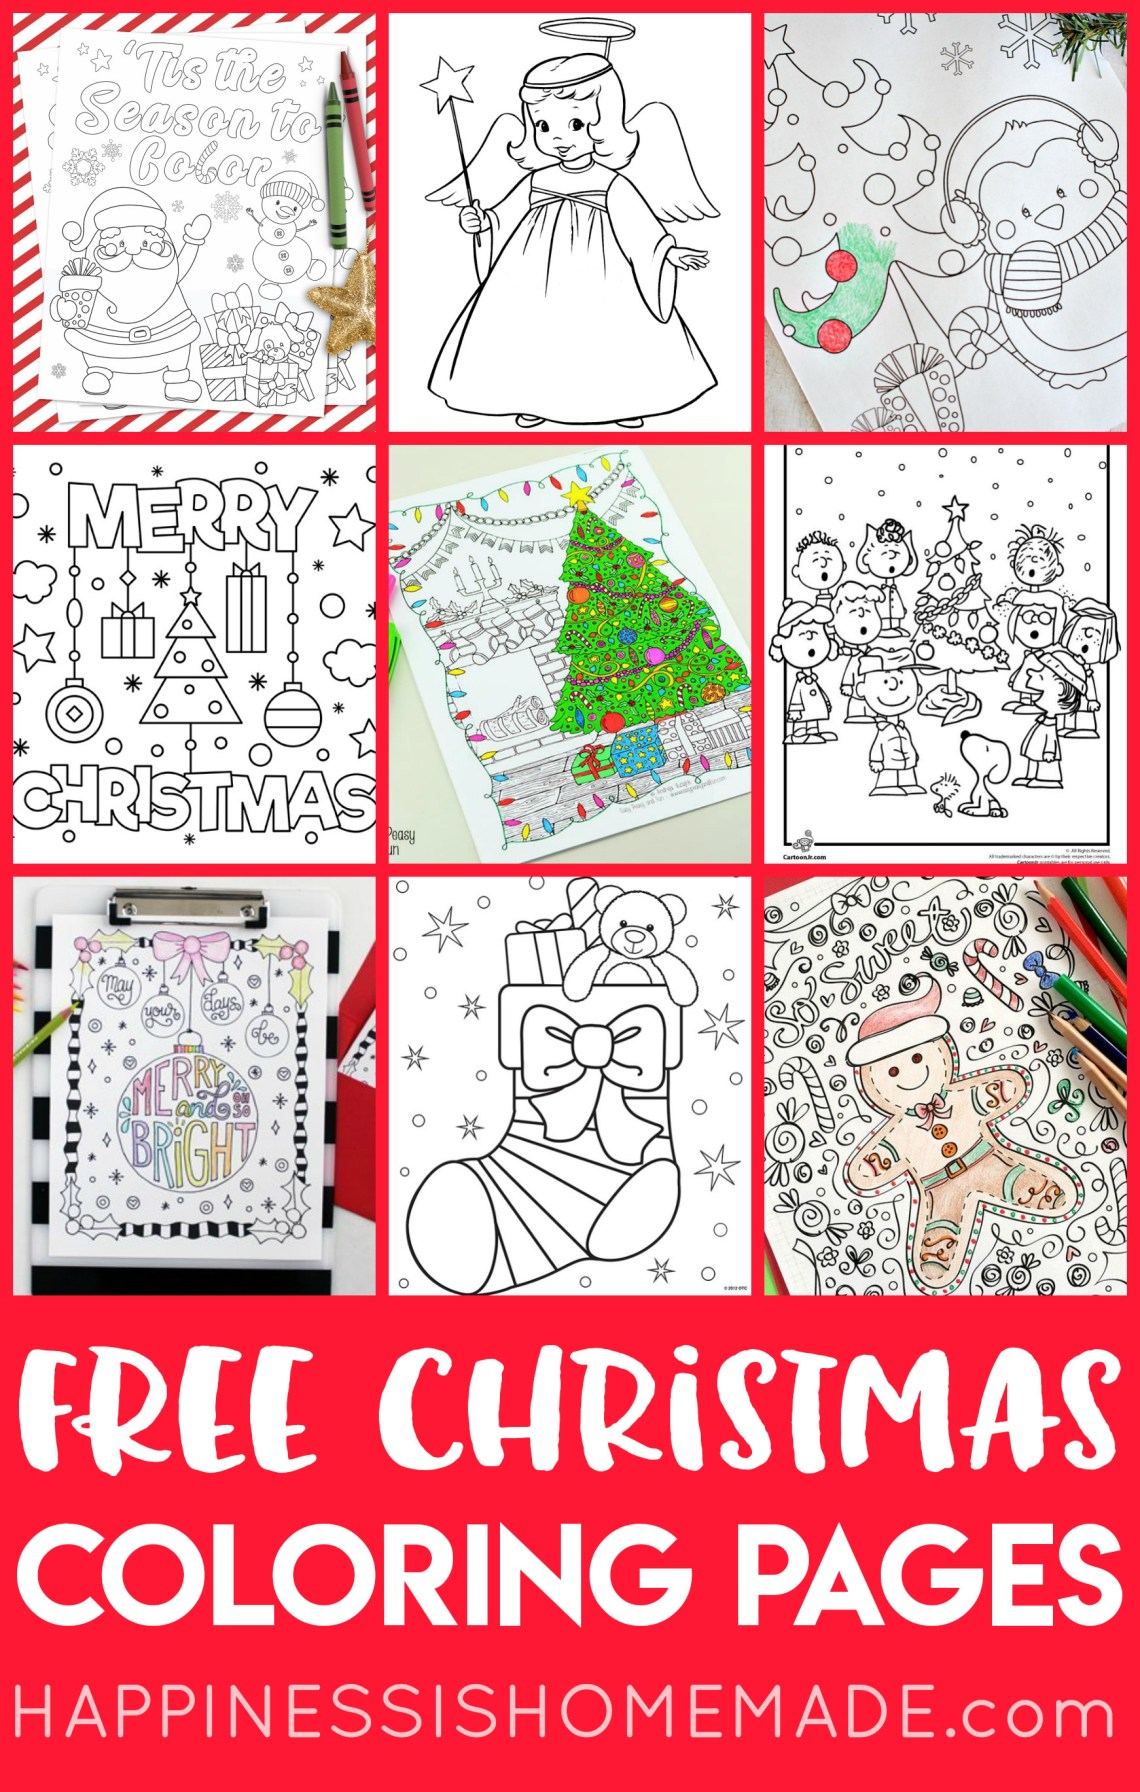 FREE Christmas Coloring Pages for Adults and Kids ... | free full size printable christmas coloring pages for adults